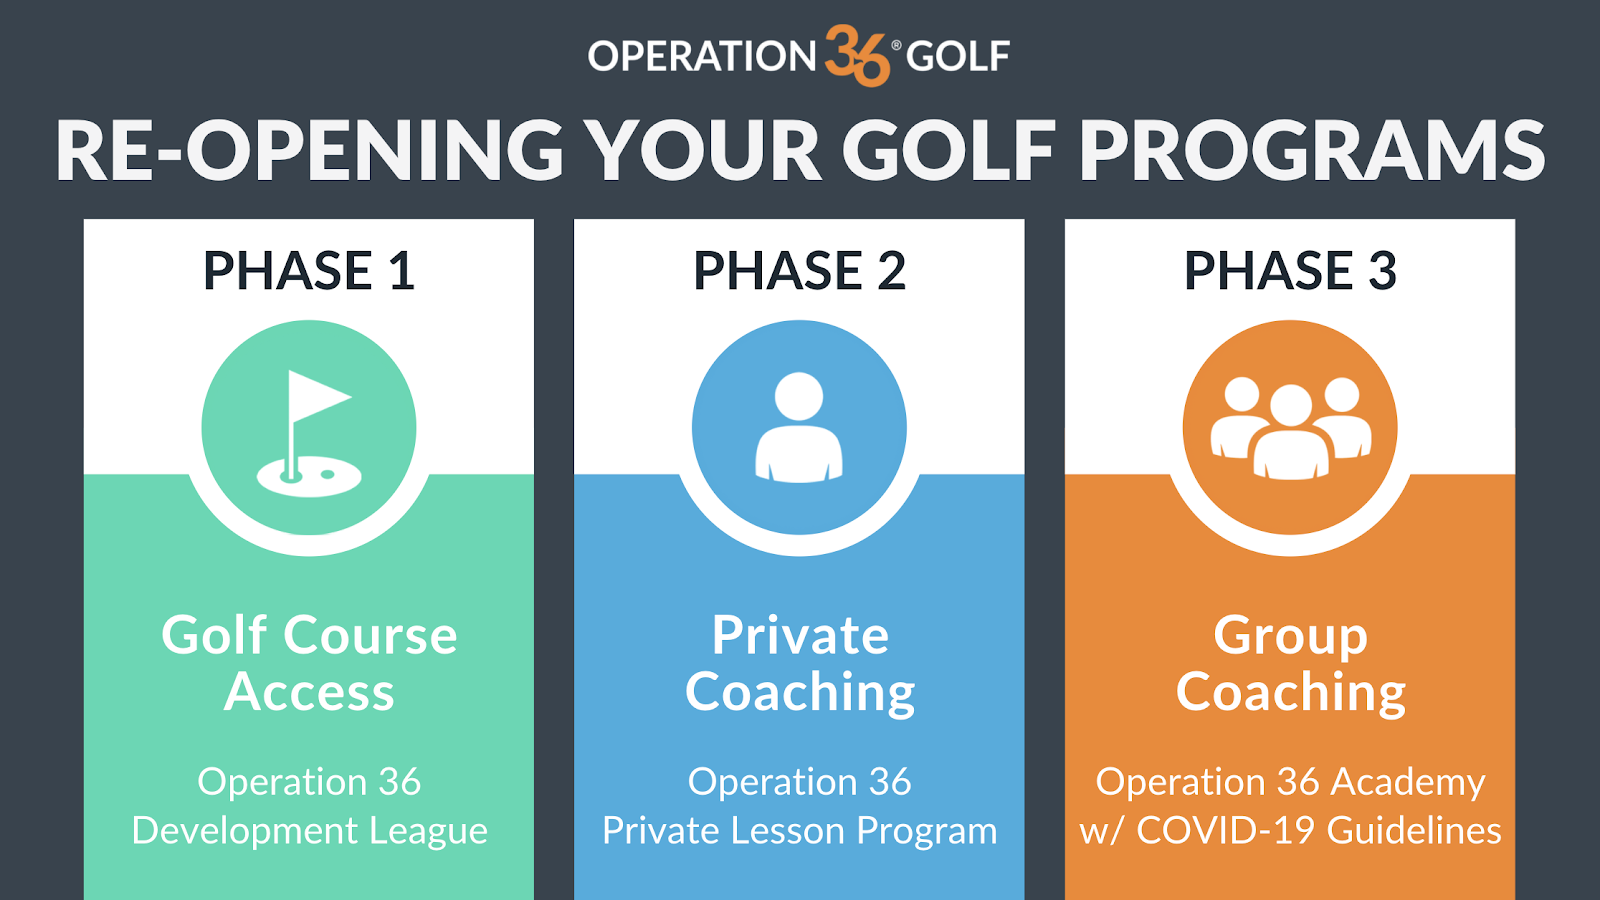 Re-opening your golf program phases